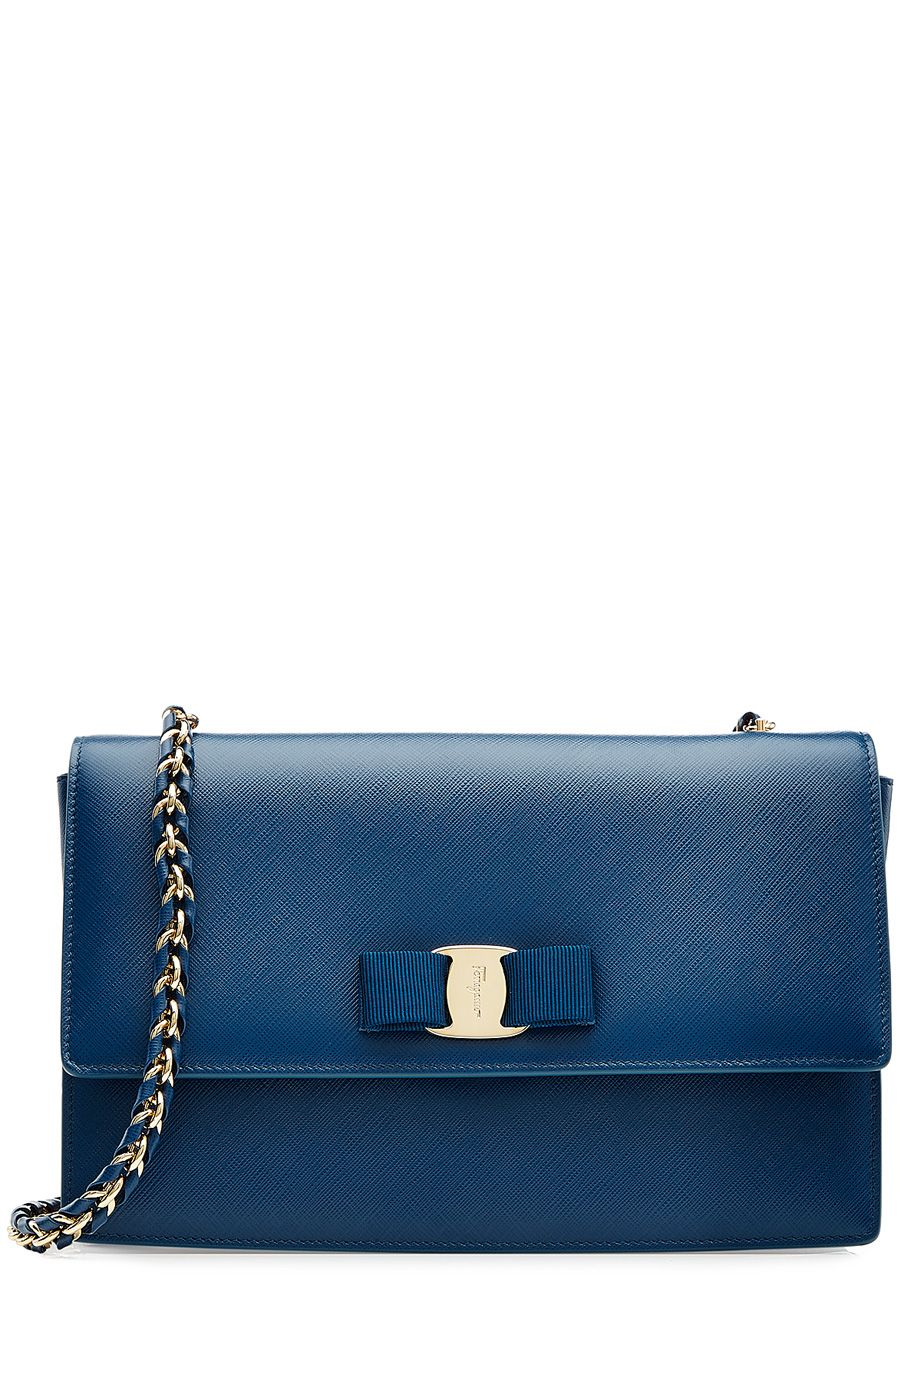 f272018b89c3 The color is mesmerizing. Ginny Medium Leather Shoulder Bag by Salvatore  Ferragamo -  626 (30% off).  SalvatoreFerragamo  GiftMode  BlueClutch